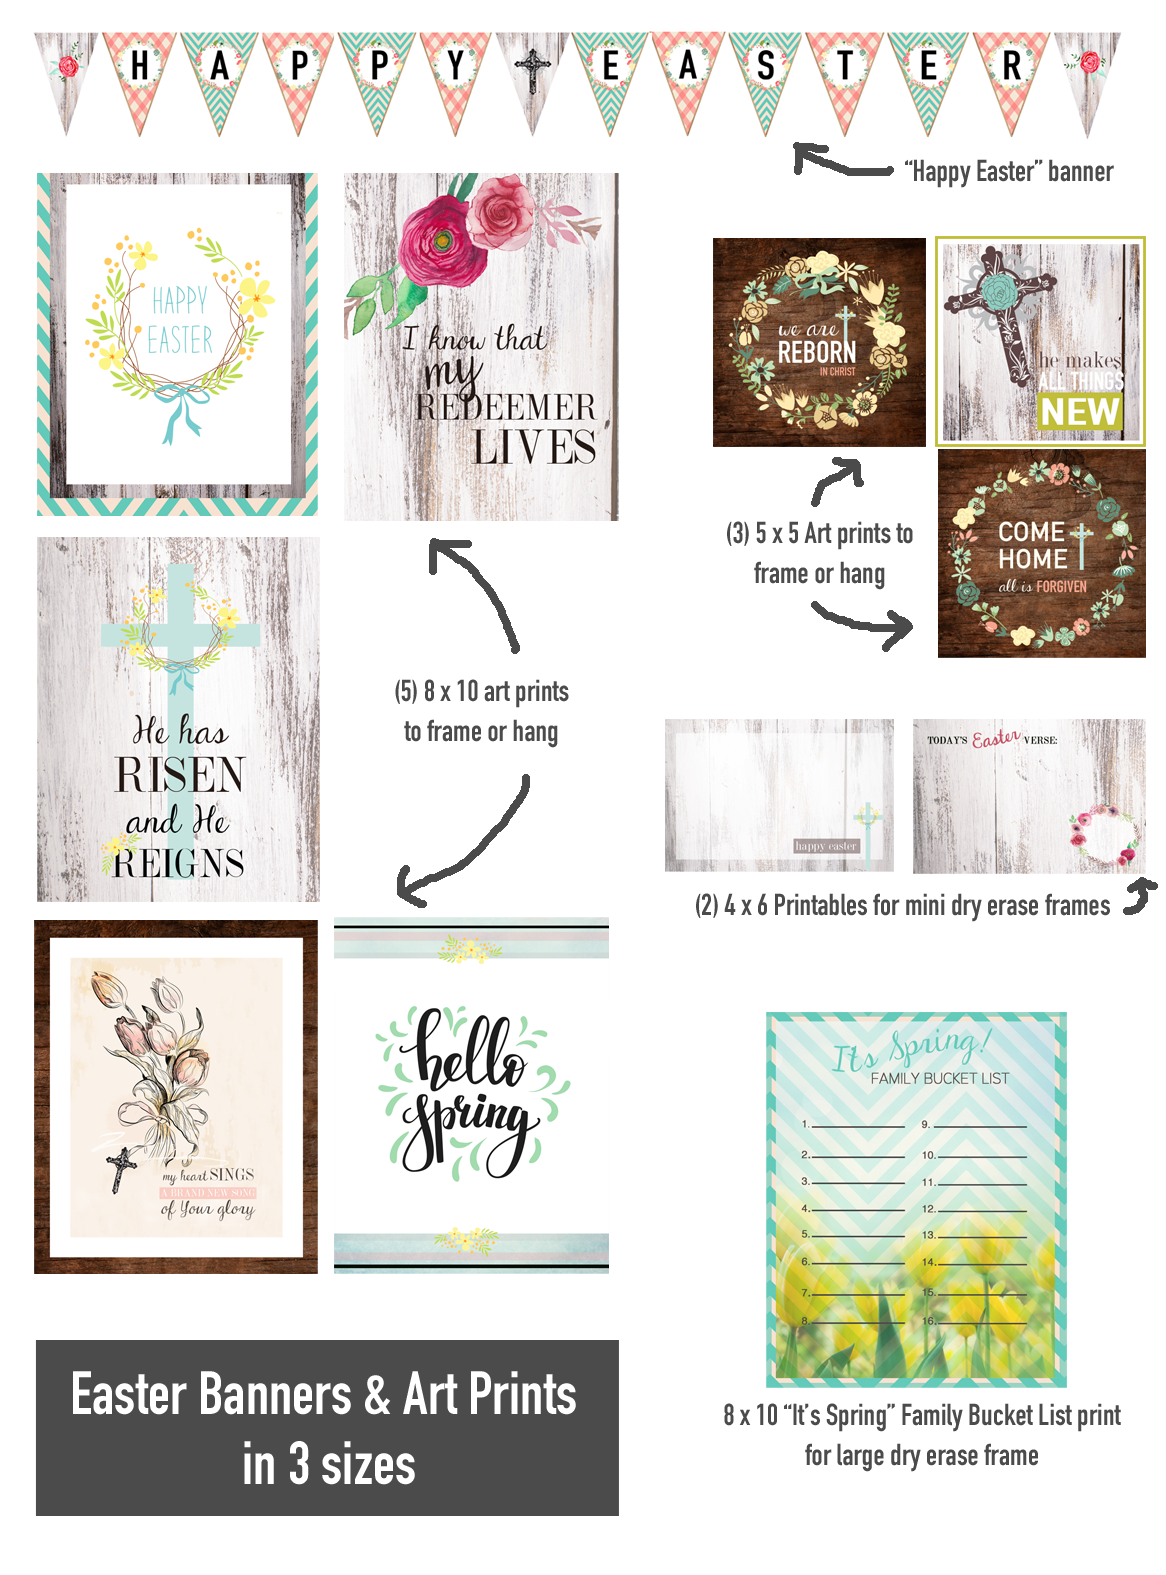 christ centered easter decor | happy easter banner | christ centered easter | easter decor | easter wall art | easter wall decorations | easter printables free | free easter printables decorations